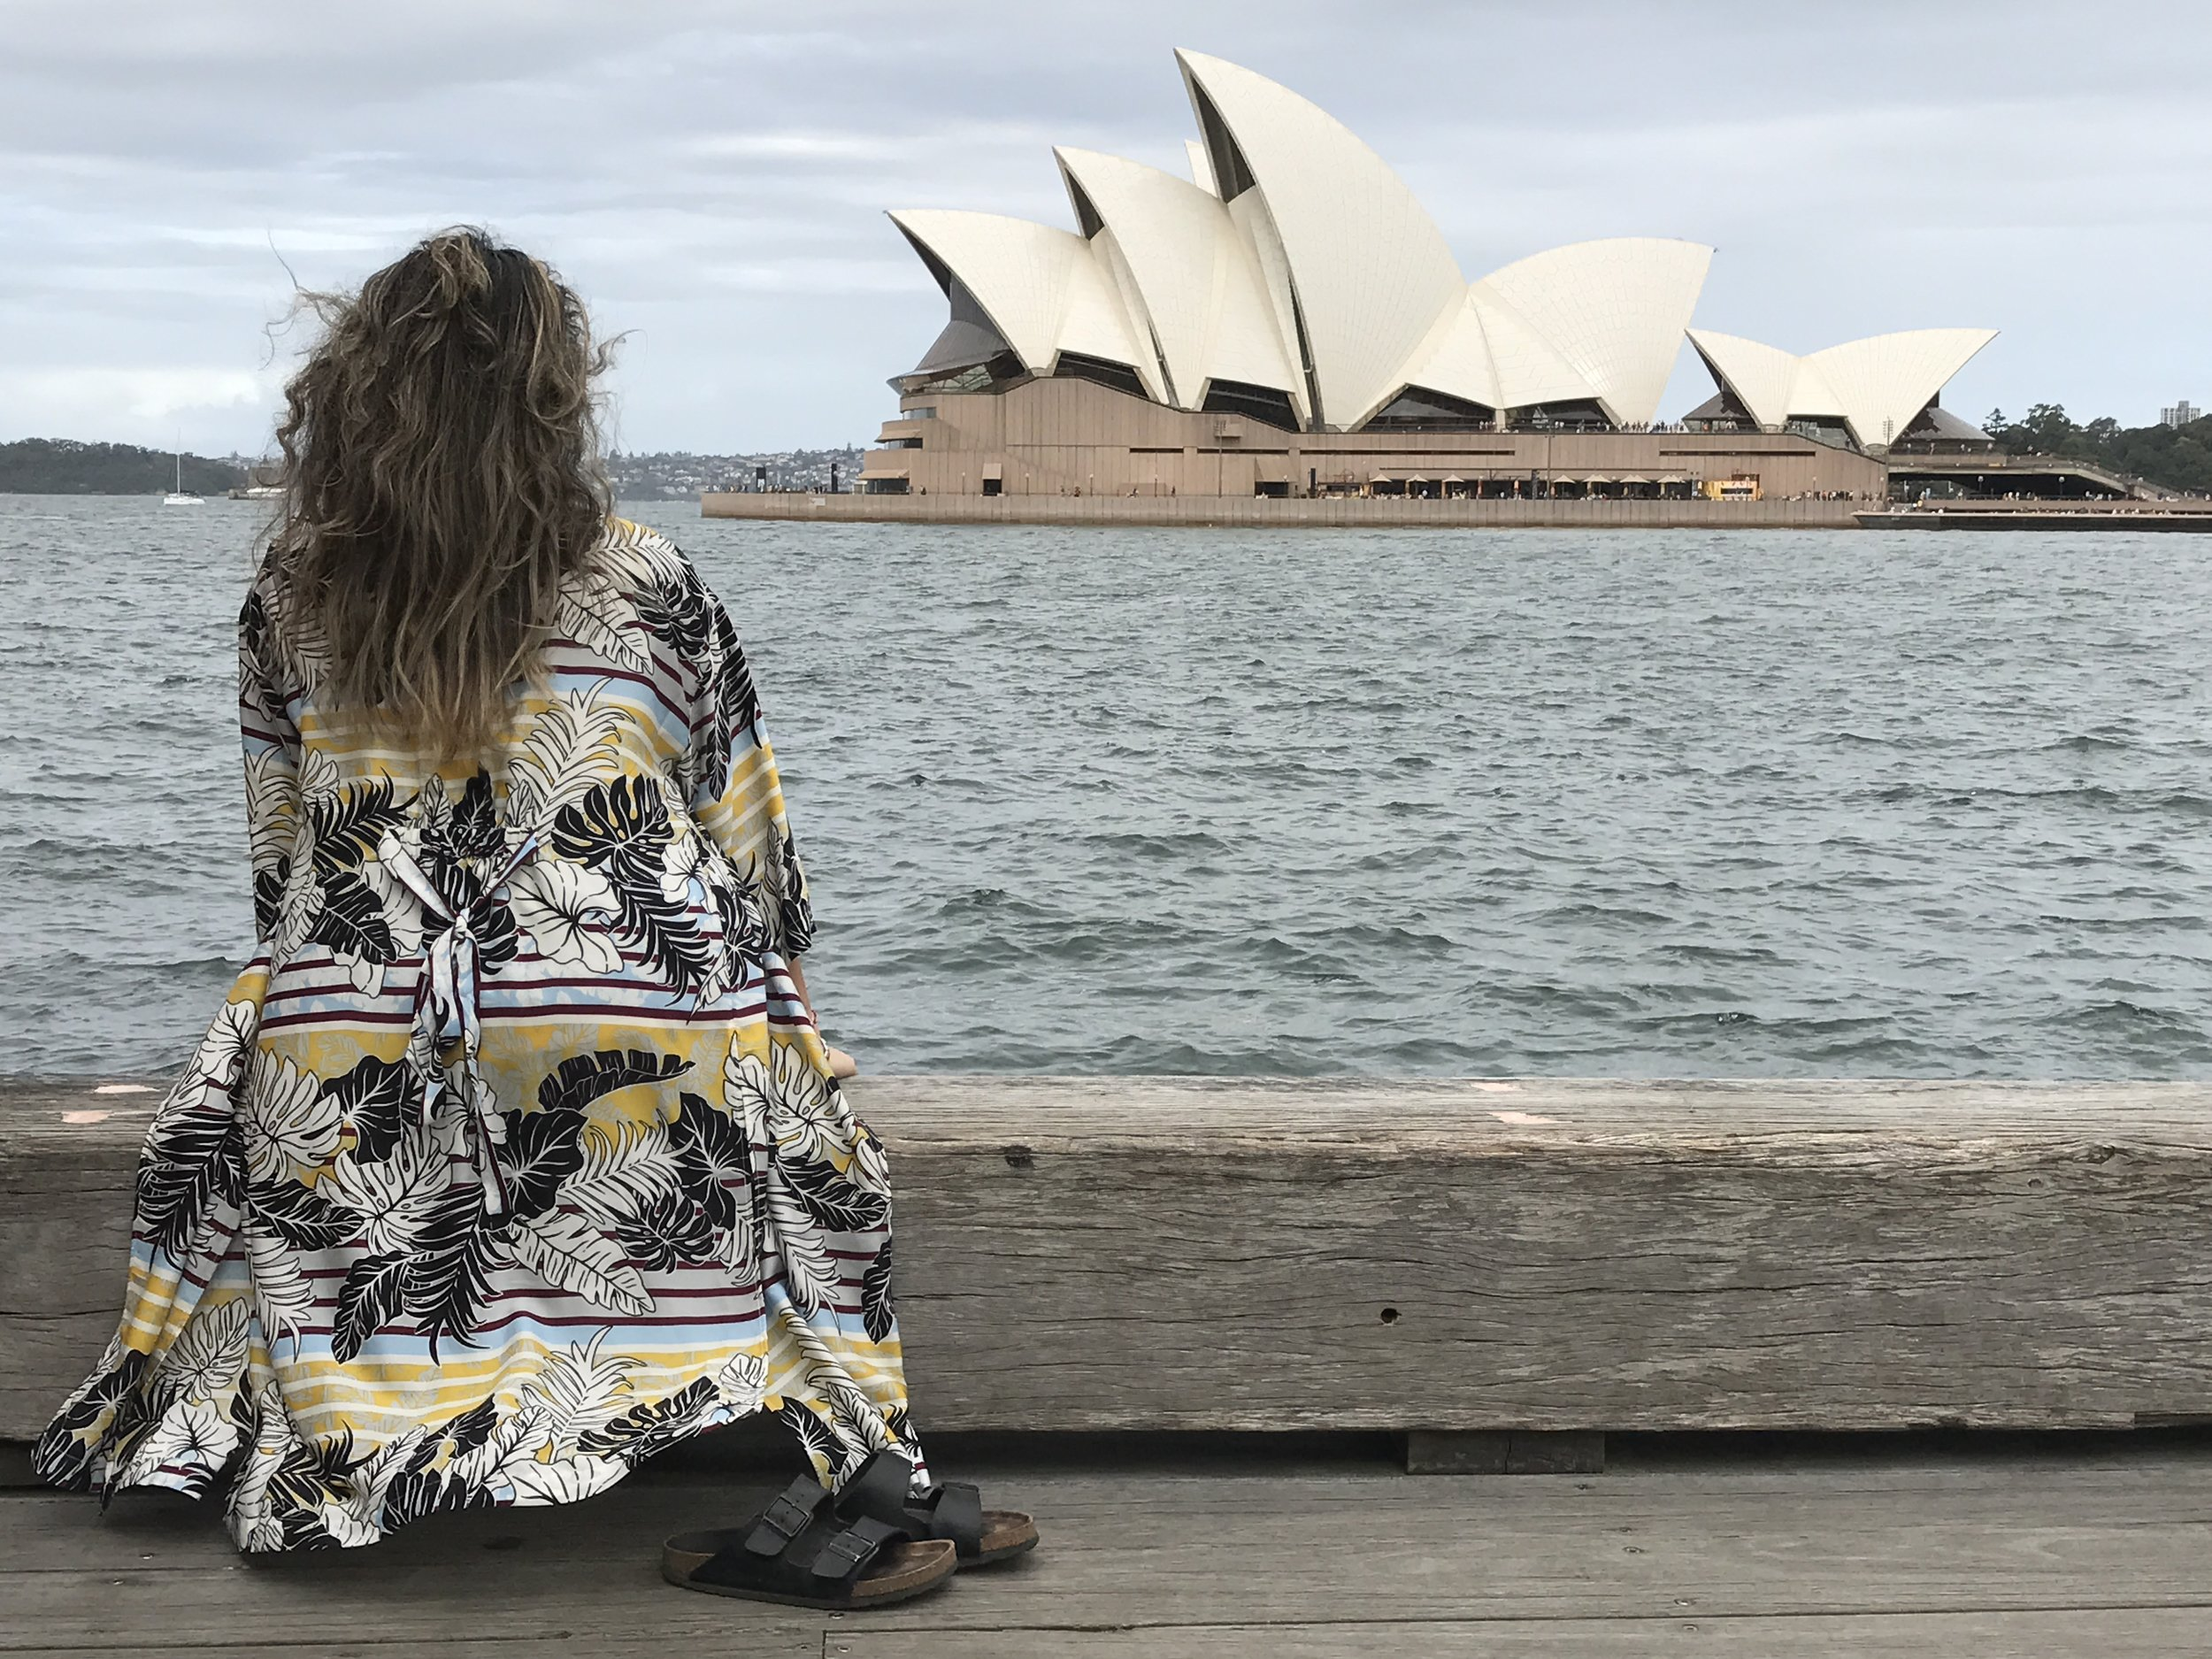 The breeze catching my long jacket as I sit and take in the Sydney Opera House on a cloudy day